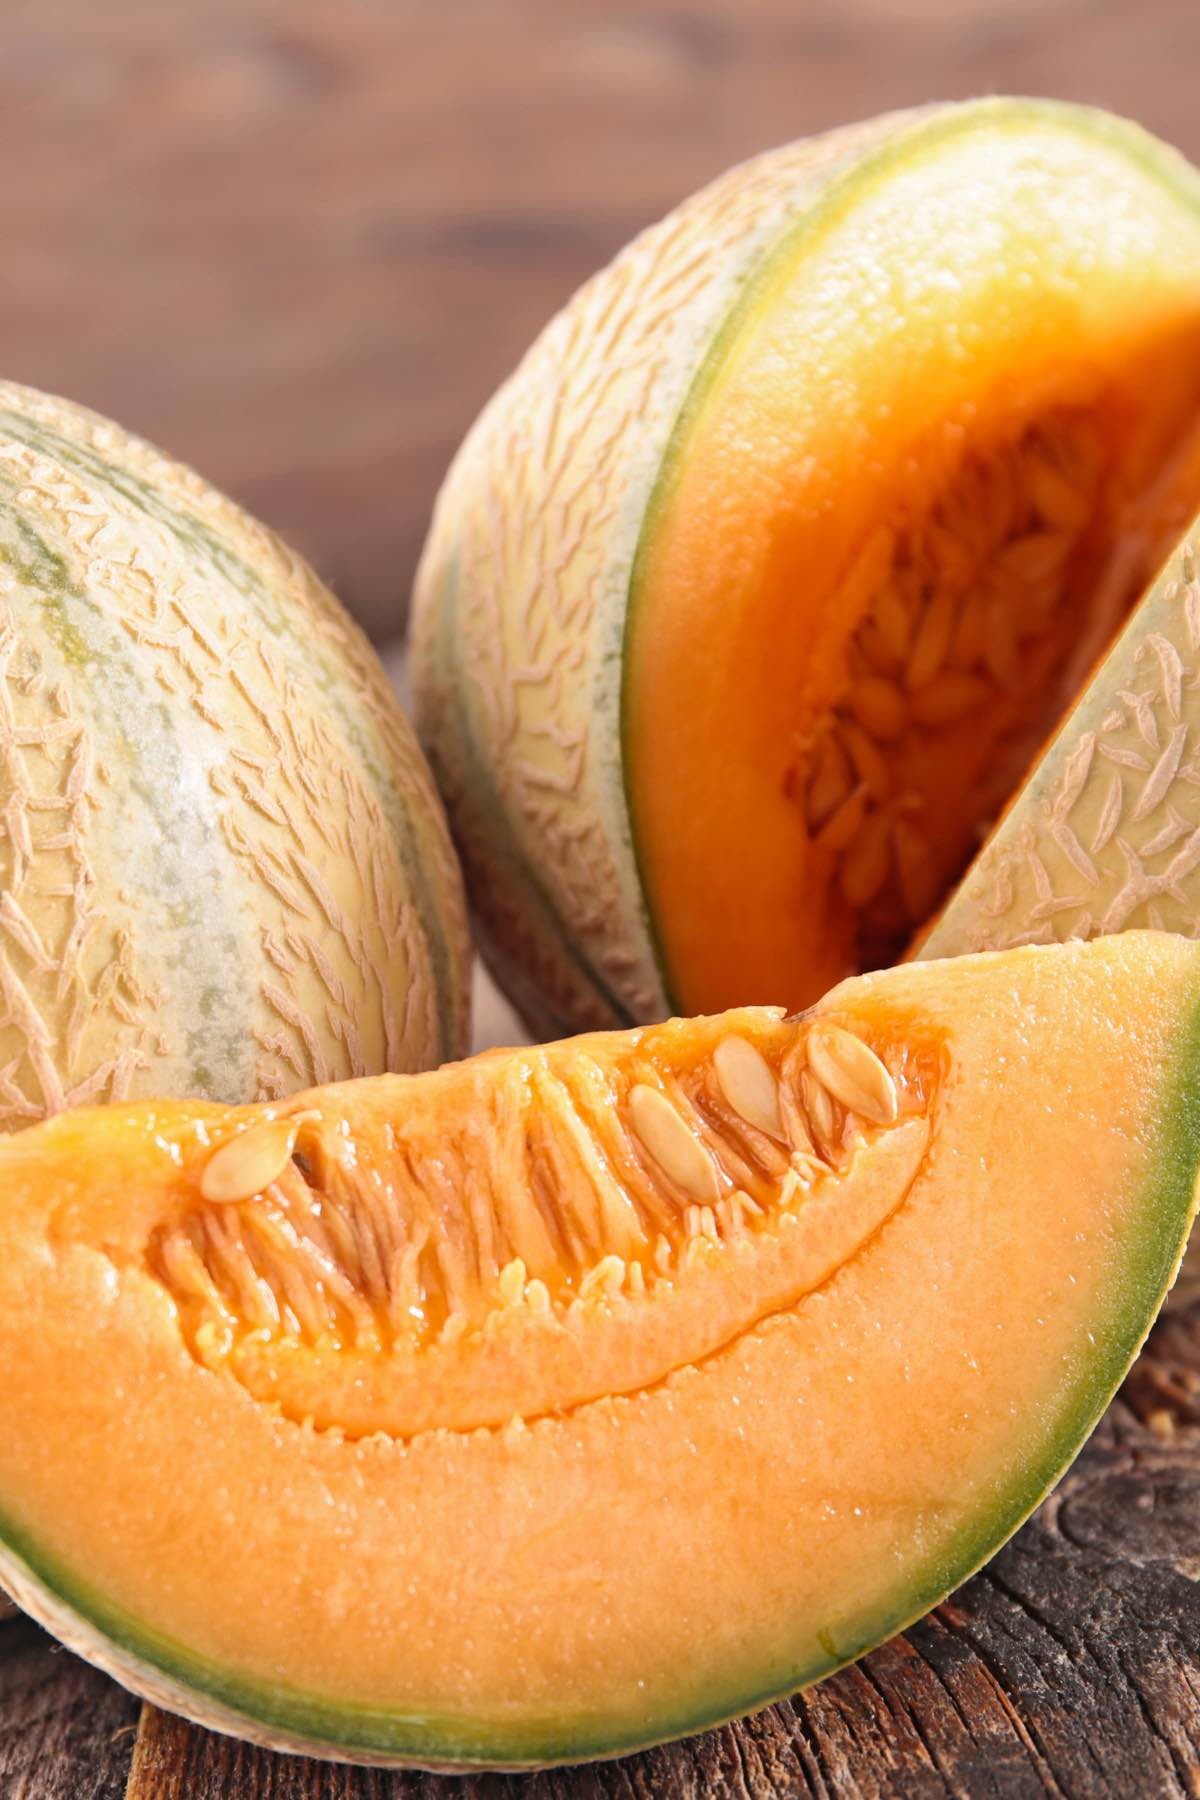 Wedges of ripe cantaloupe with bright, coral-colored flesh